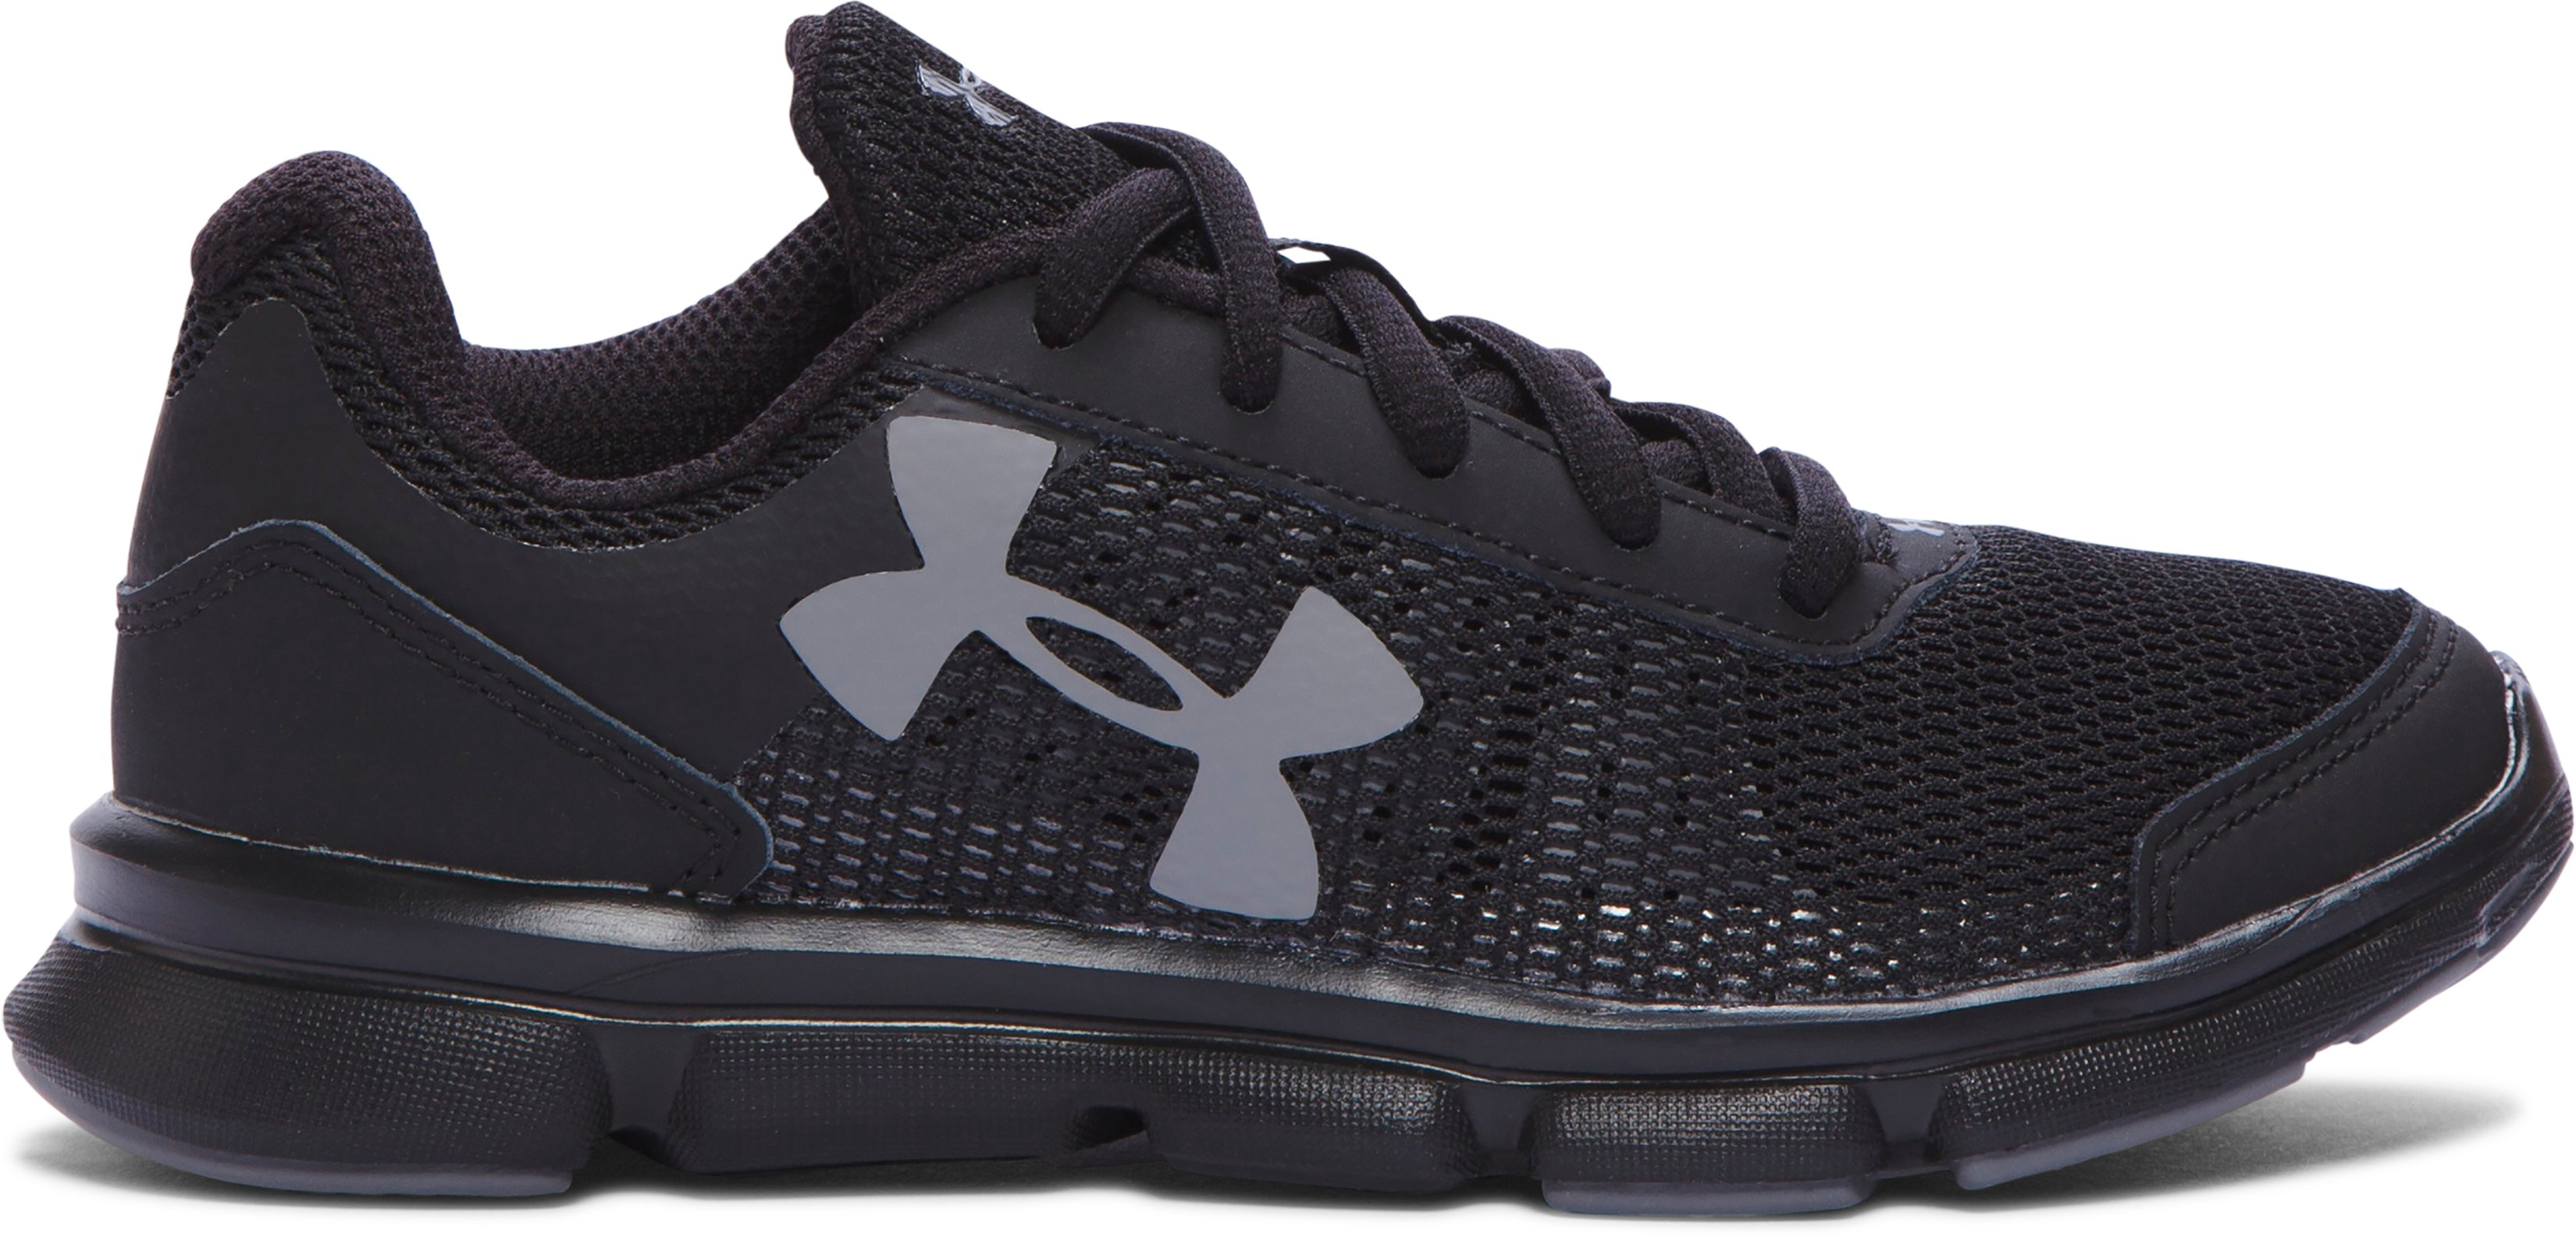 Chaussures Under Armour Bps Speed Swift pvN8Rqd